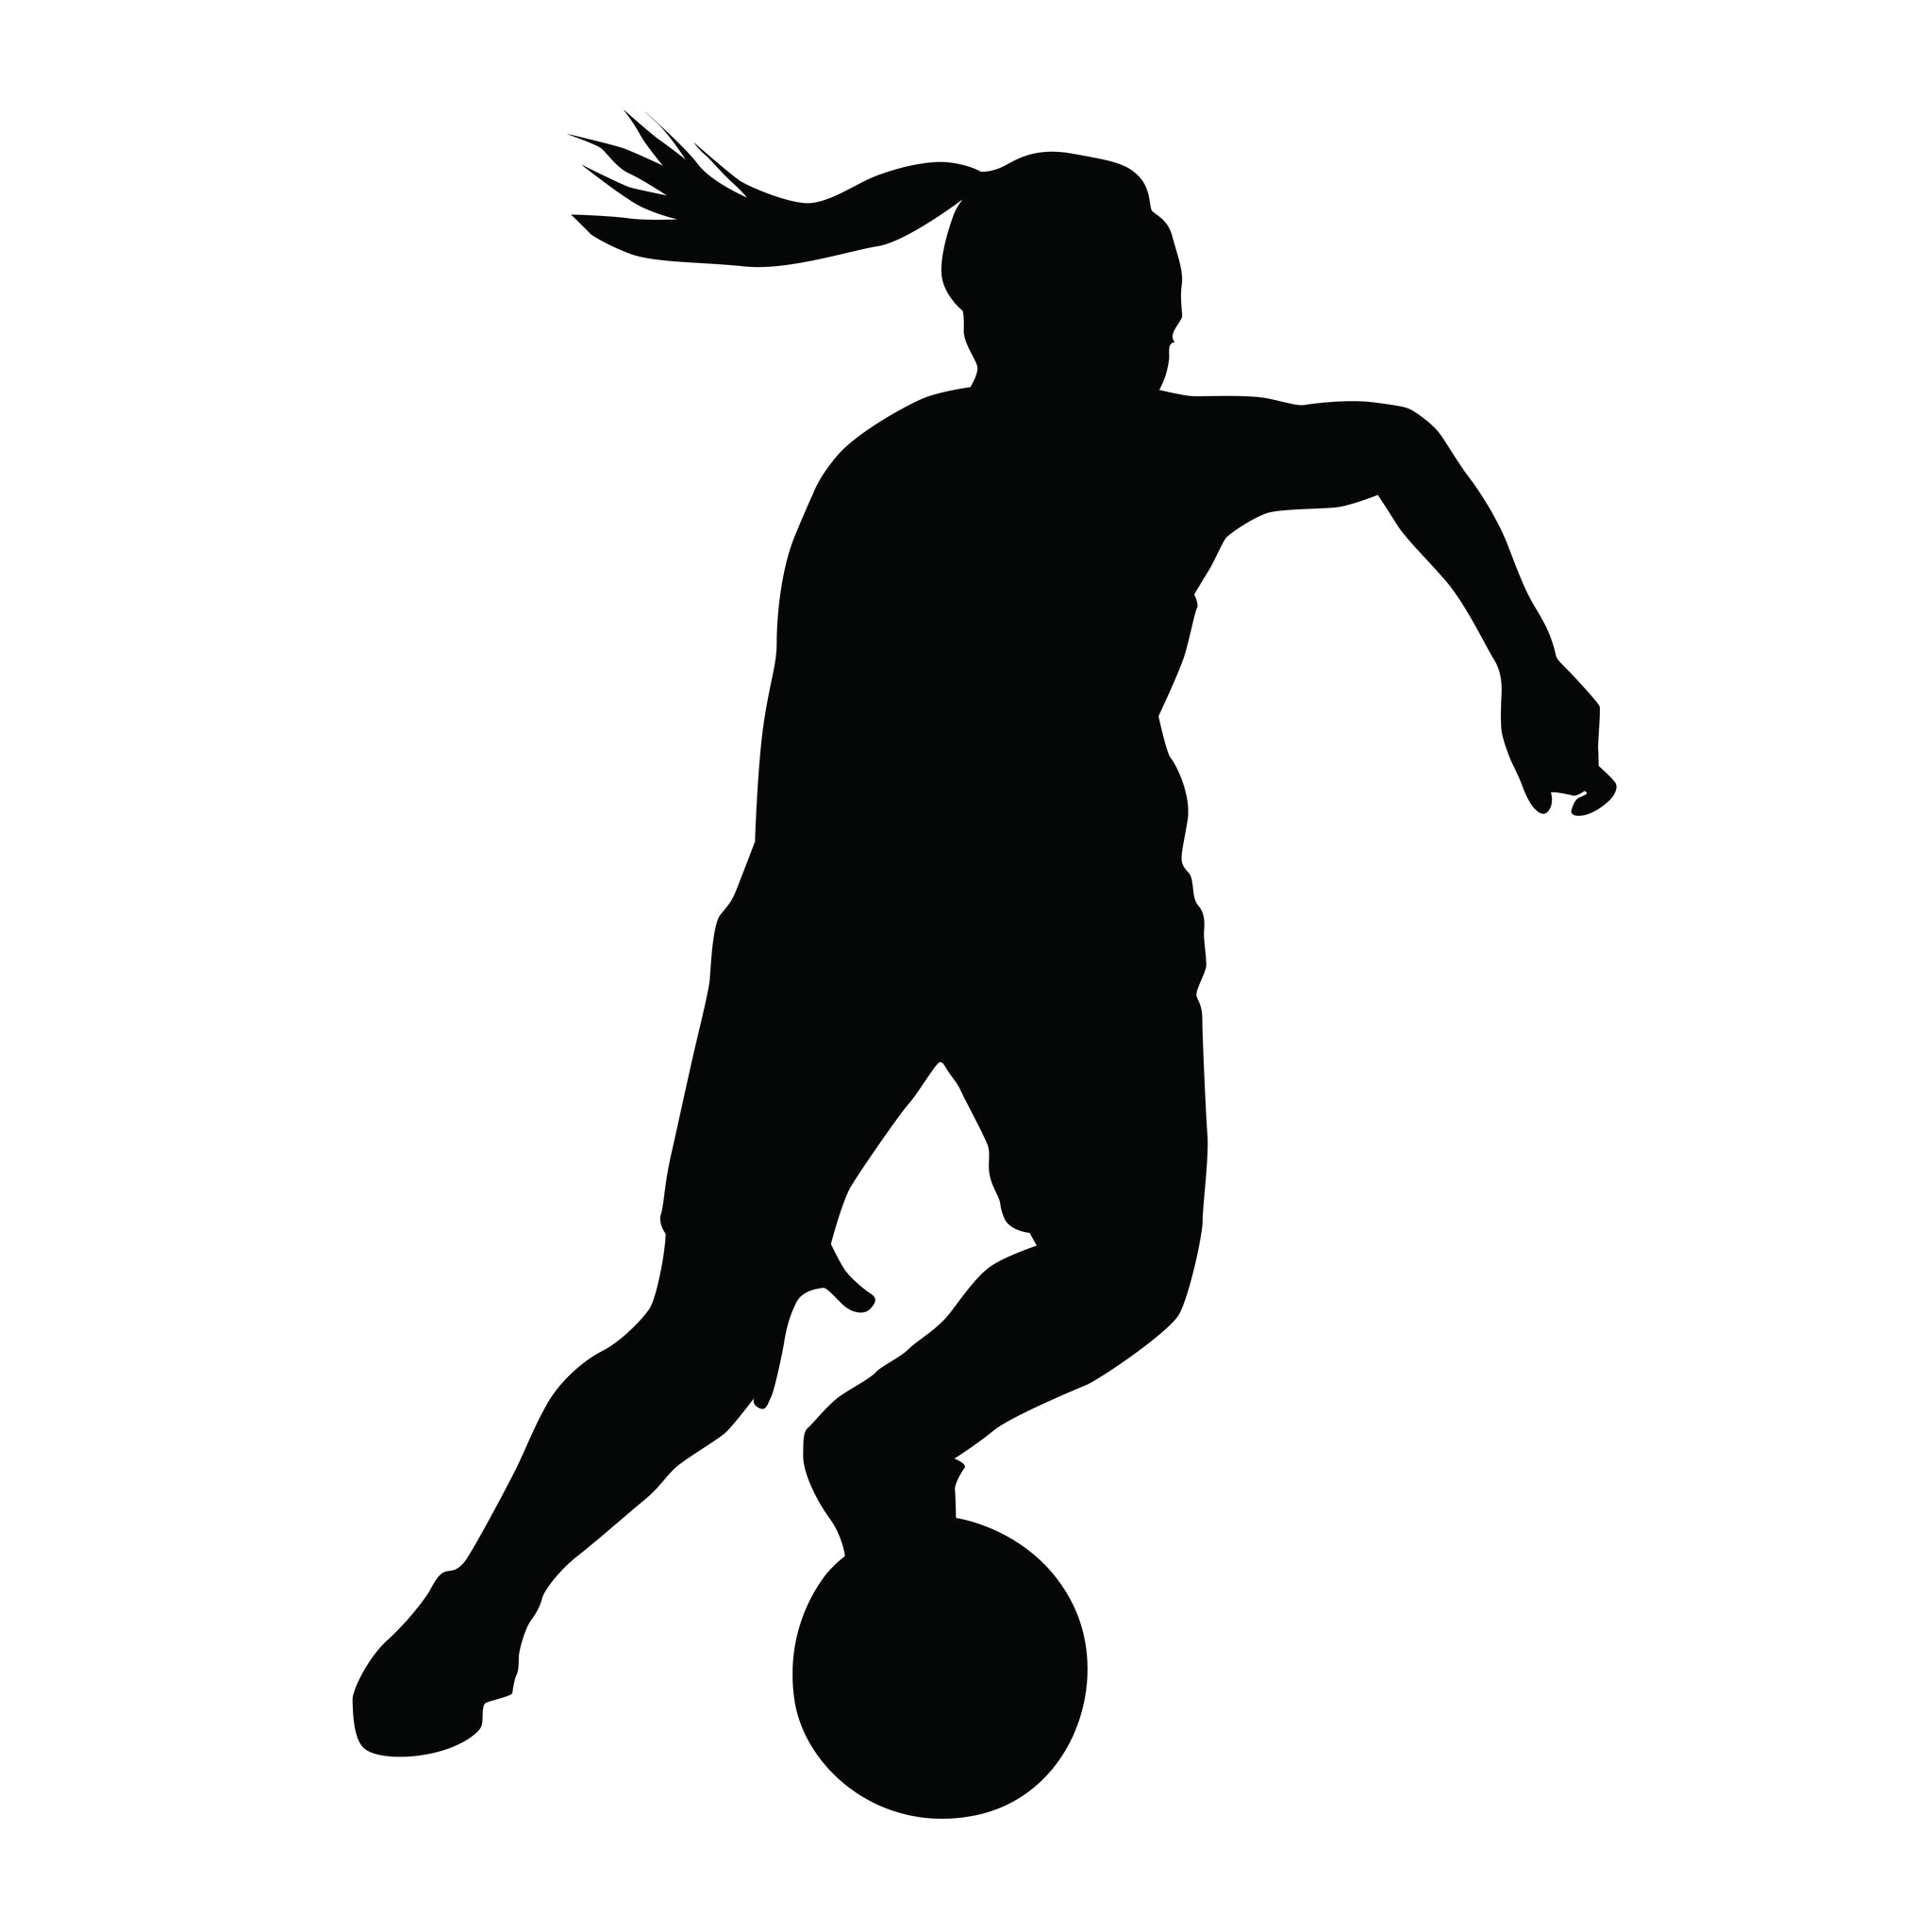 Girls clipart basketball player. Silhouette at getdrawings com